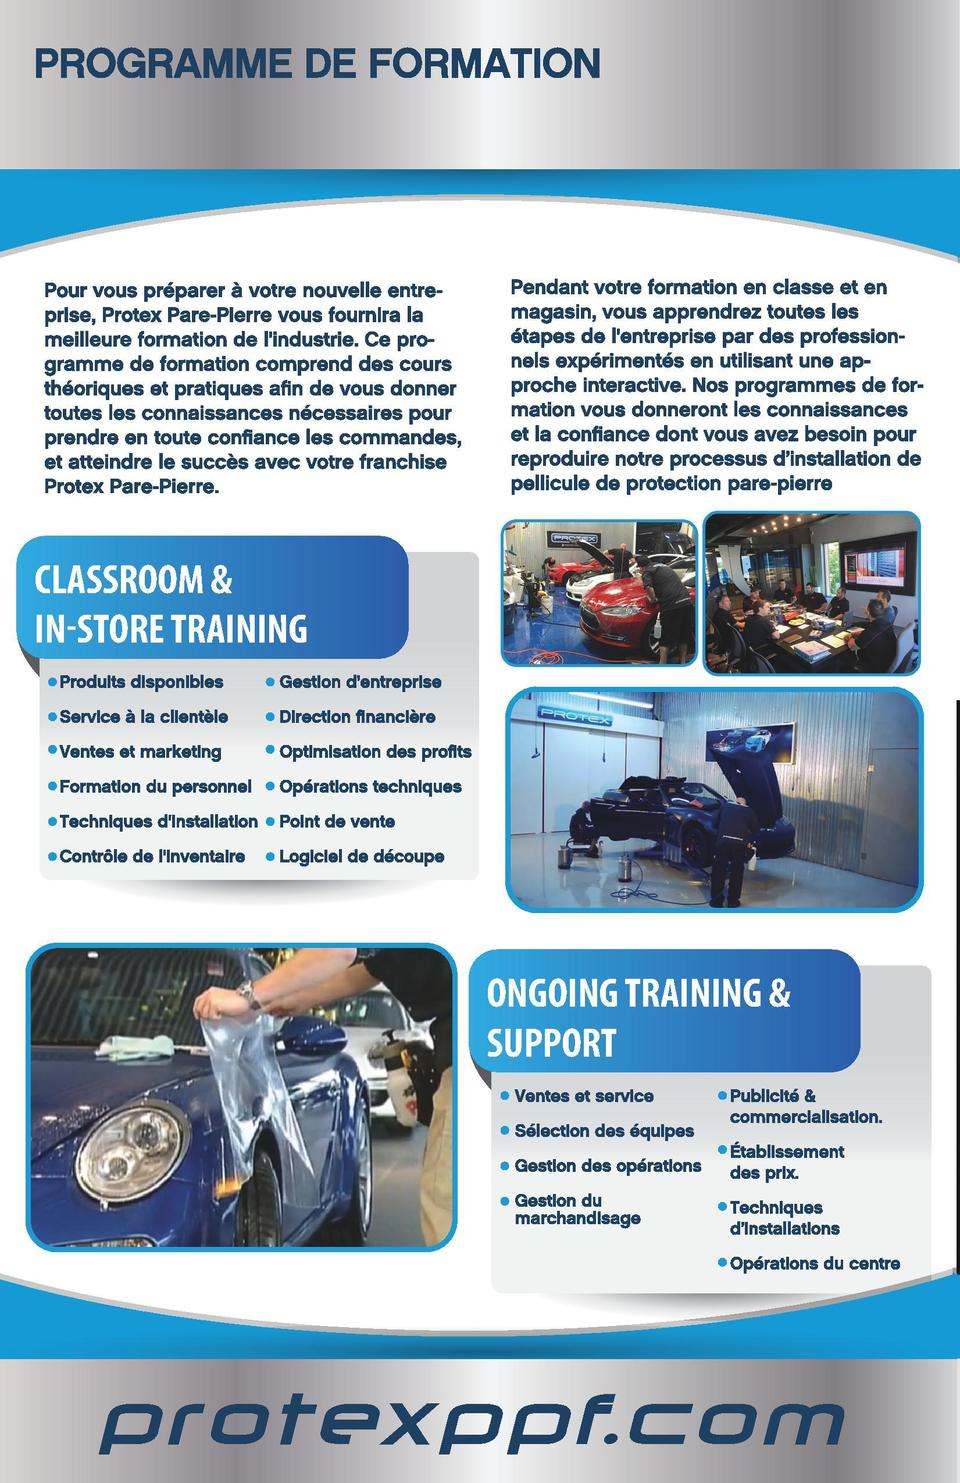 Protex Franchise_mode Cahier_FR.pdf  5  15-09-29  15 40  PROTECTION PARE-PIERRE  C  M  CLASSROOM   IN-STORE TRAINING  J  C...